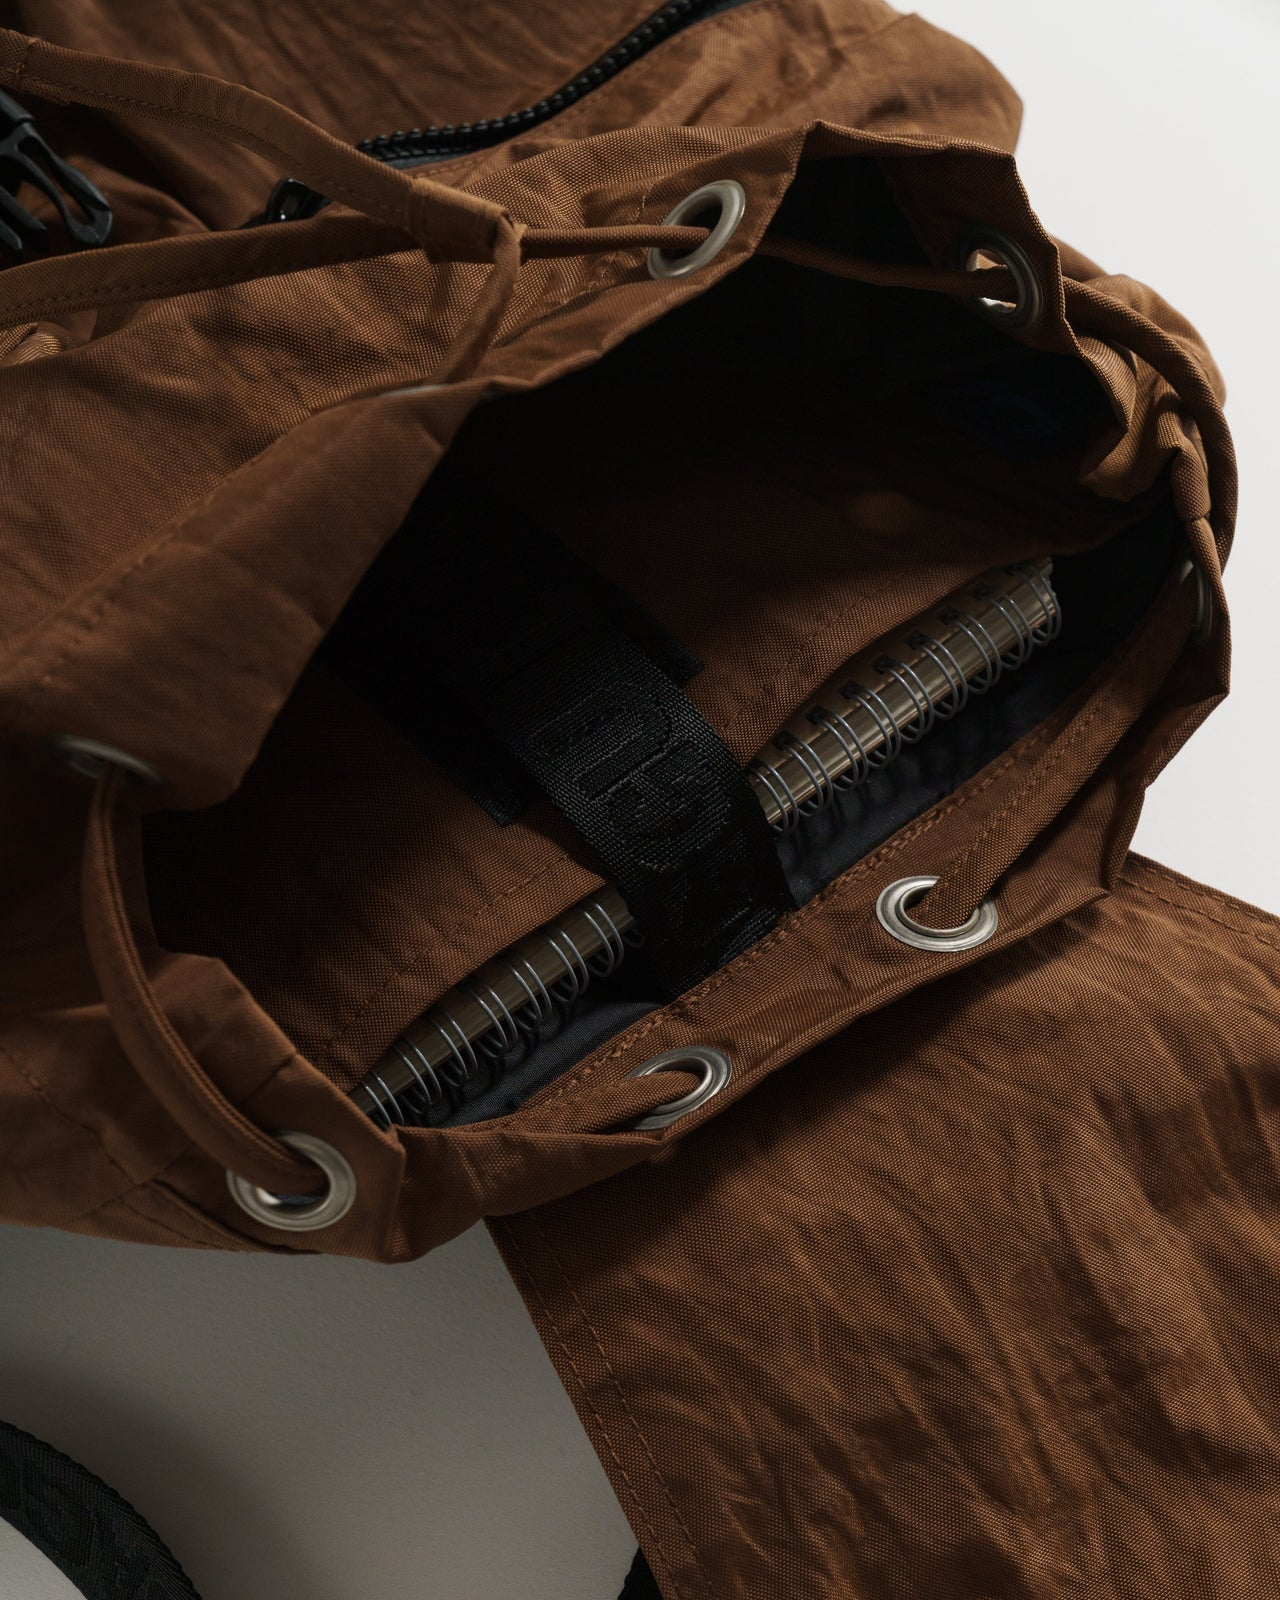 Small Sport Backpack - Brown